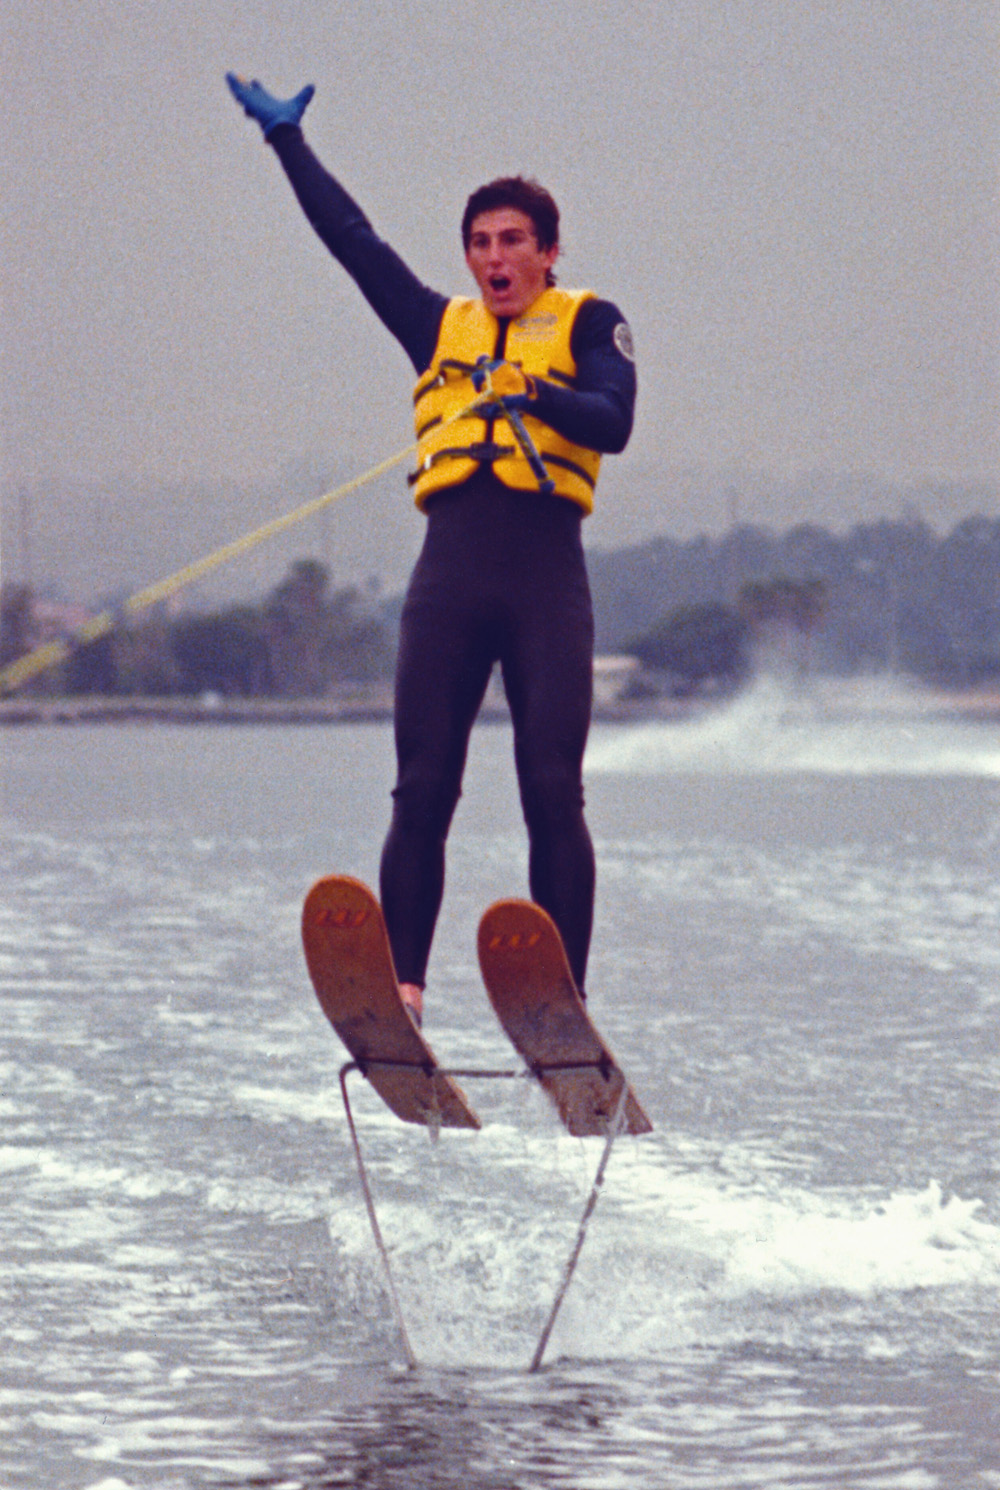 adventures-water-skiing-hydrofoiling-1981-tony-klarich-stand-up-foils